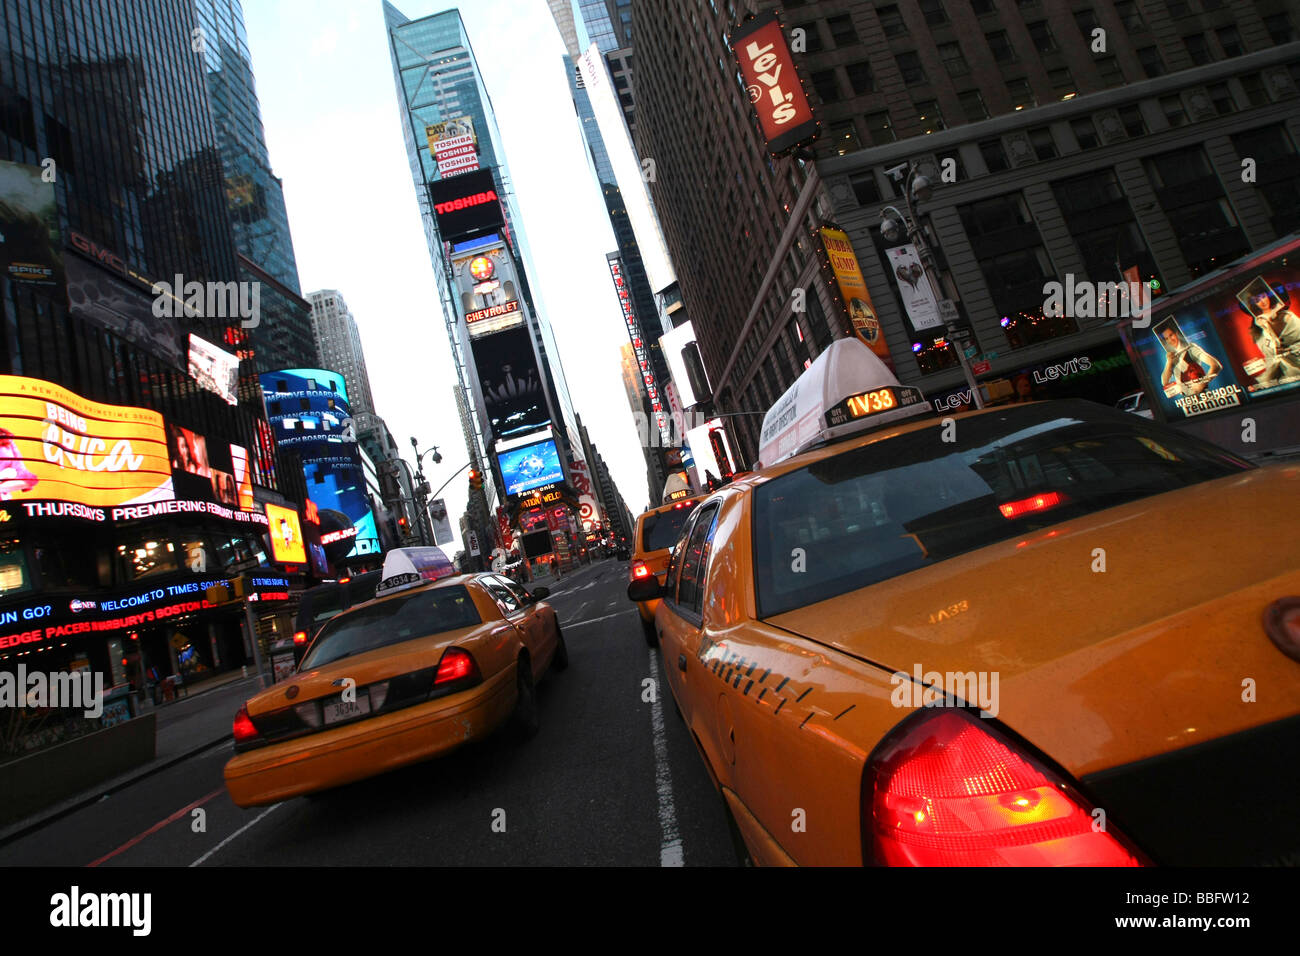 Taxis on Times Square, Manhattan, New York City, NYC, USA, United States of America - Stock Image